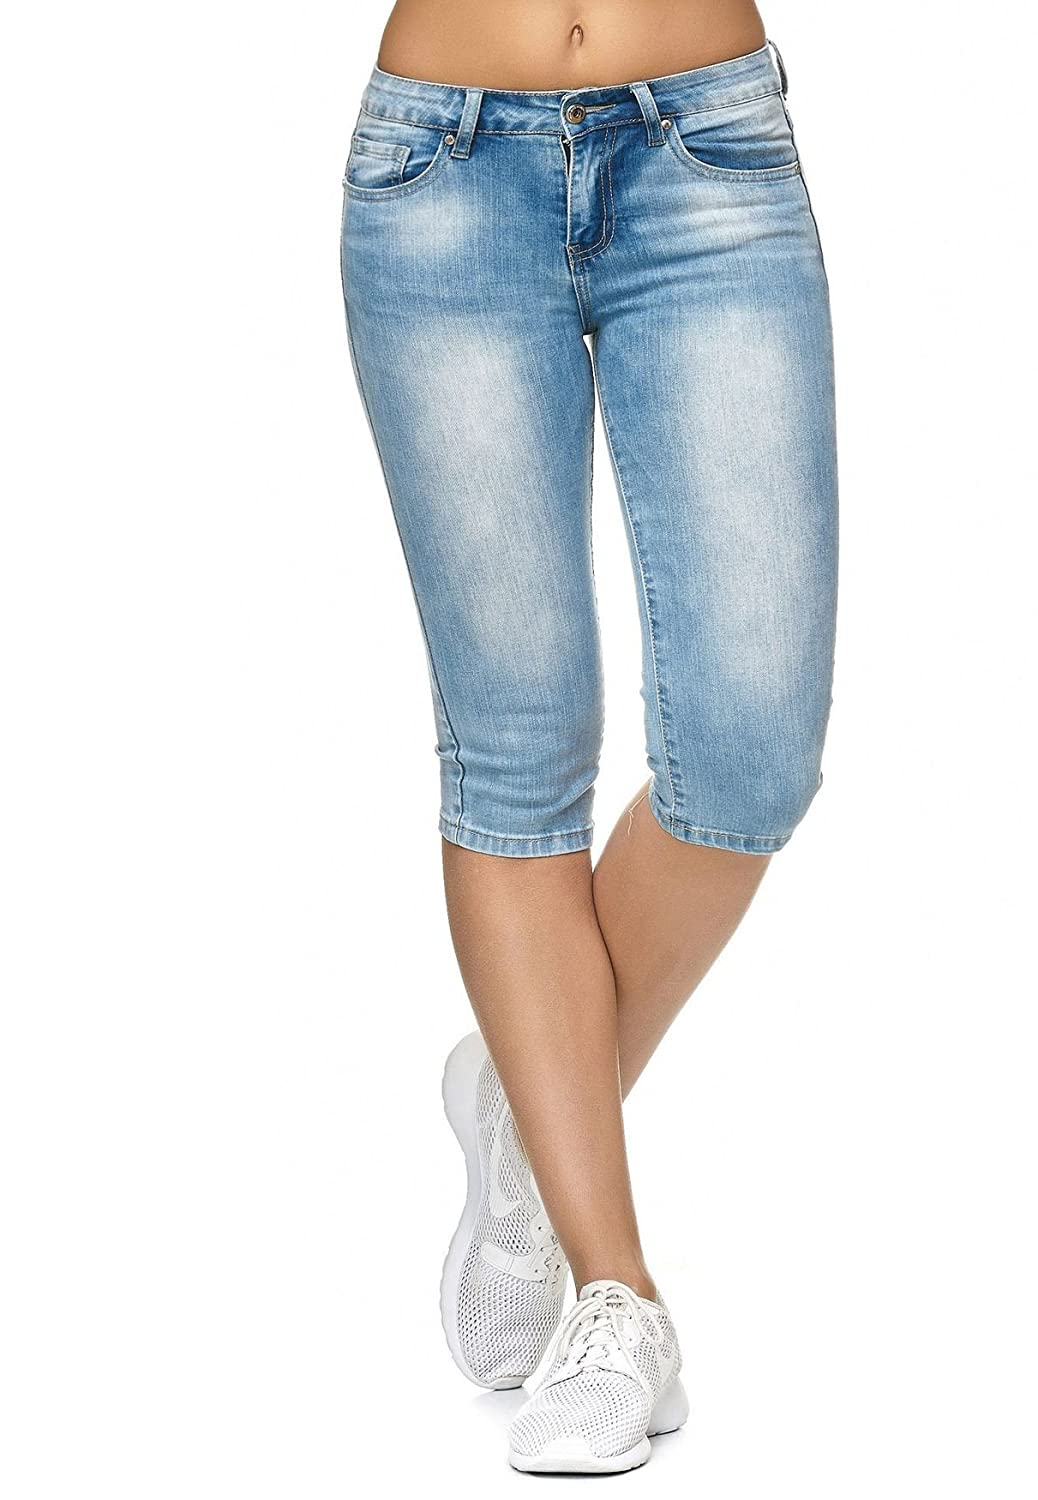 Ladie's Jeans Capri 3/4 Pants Stretch Skinny Shorts D2247